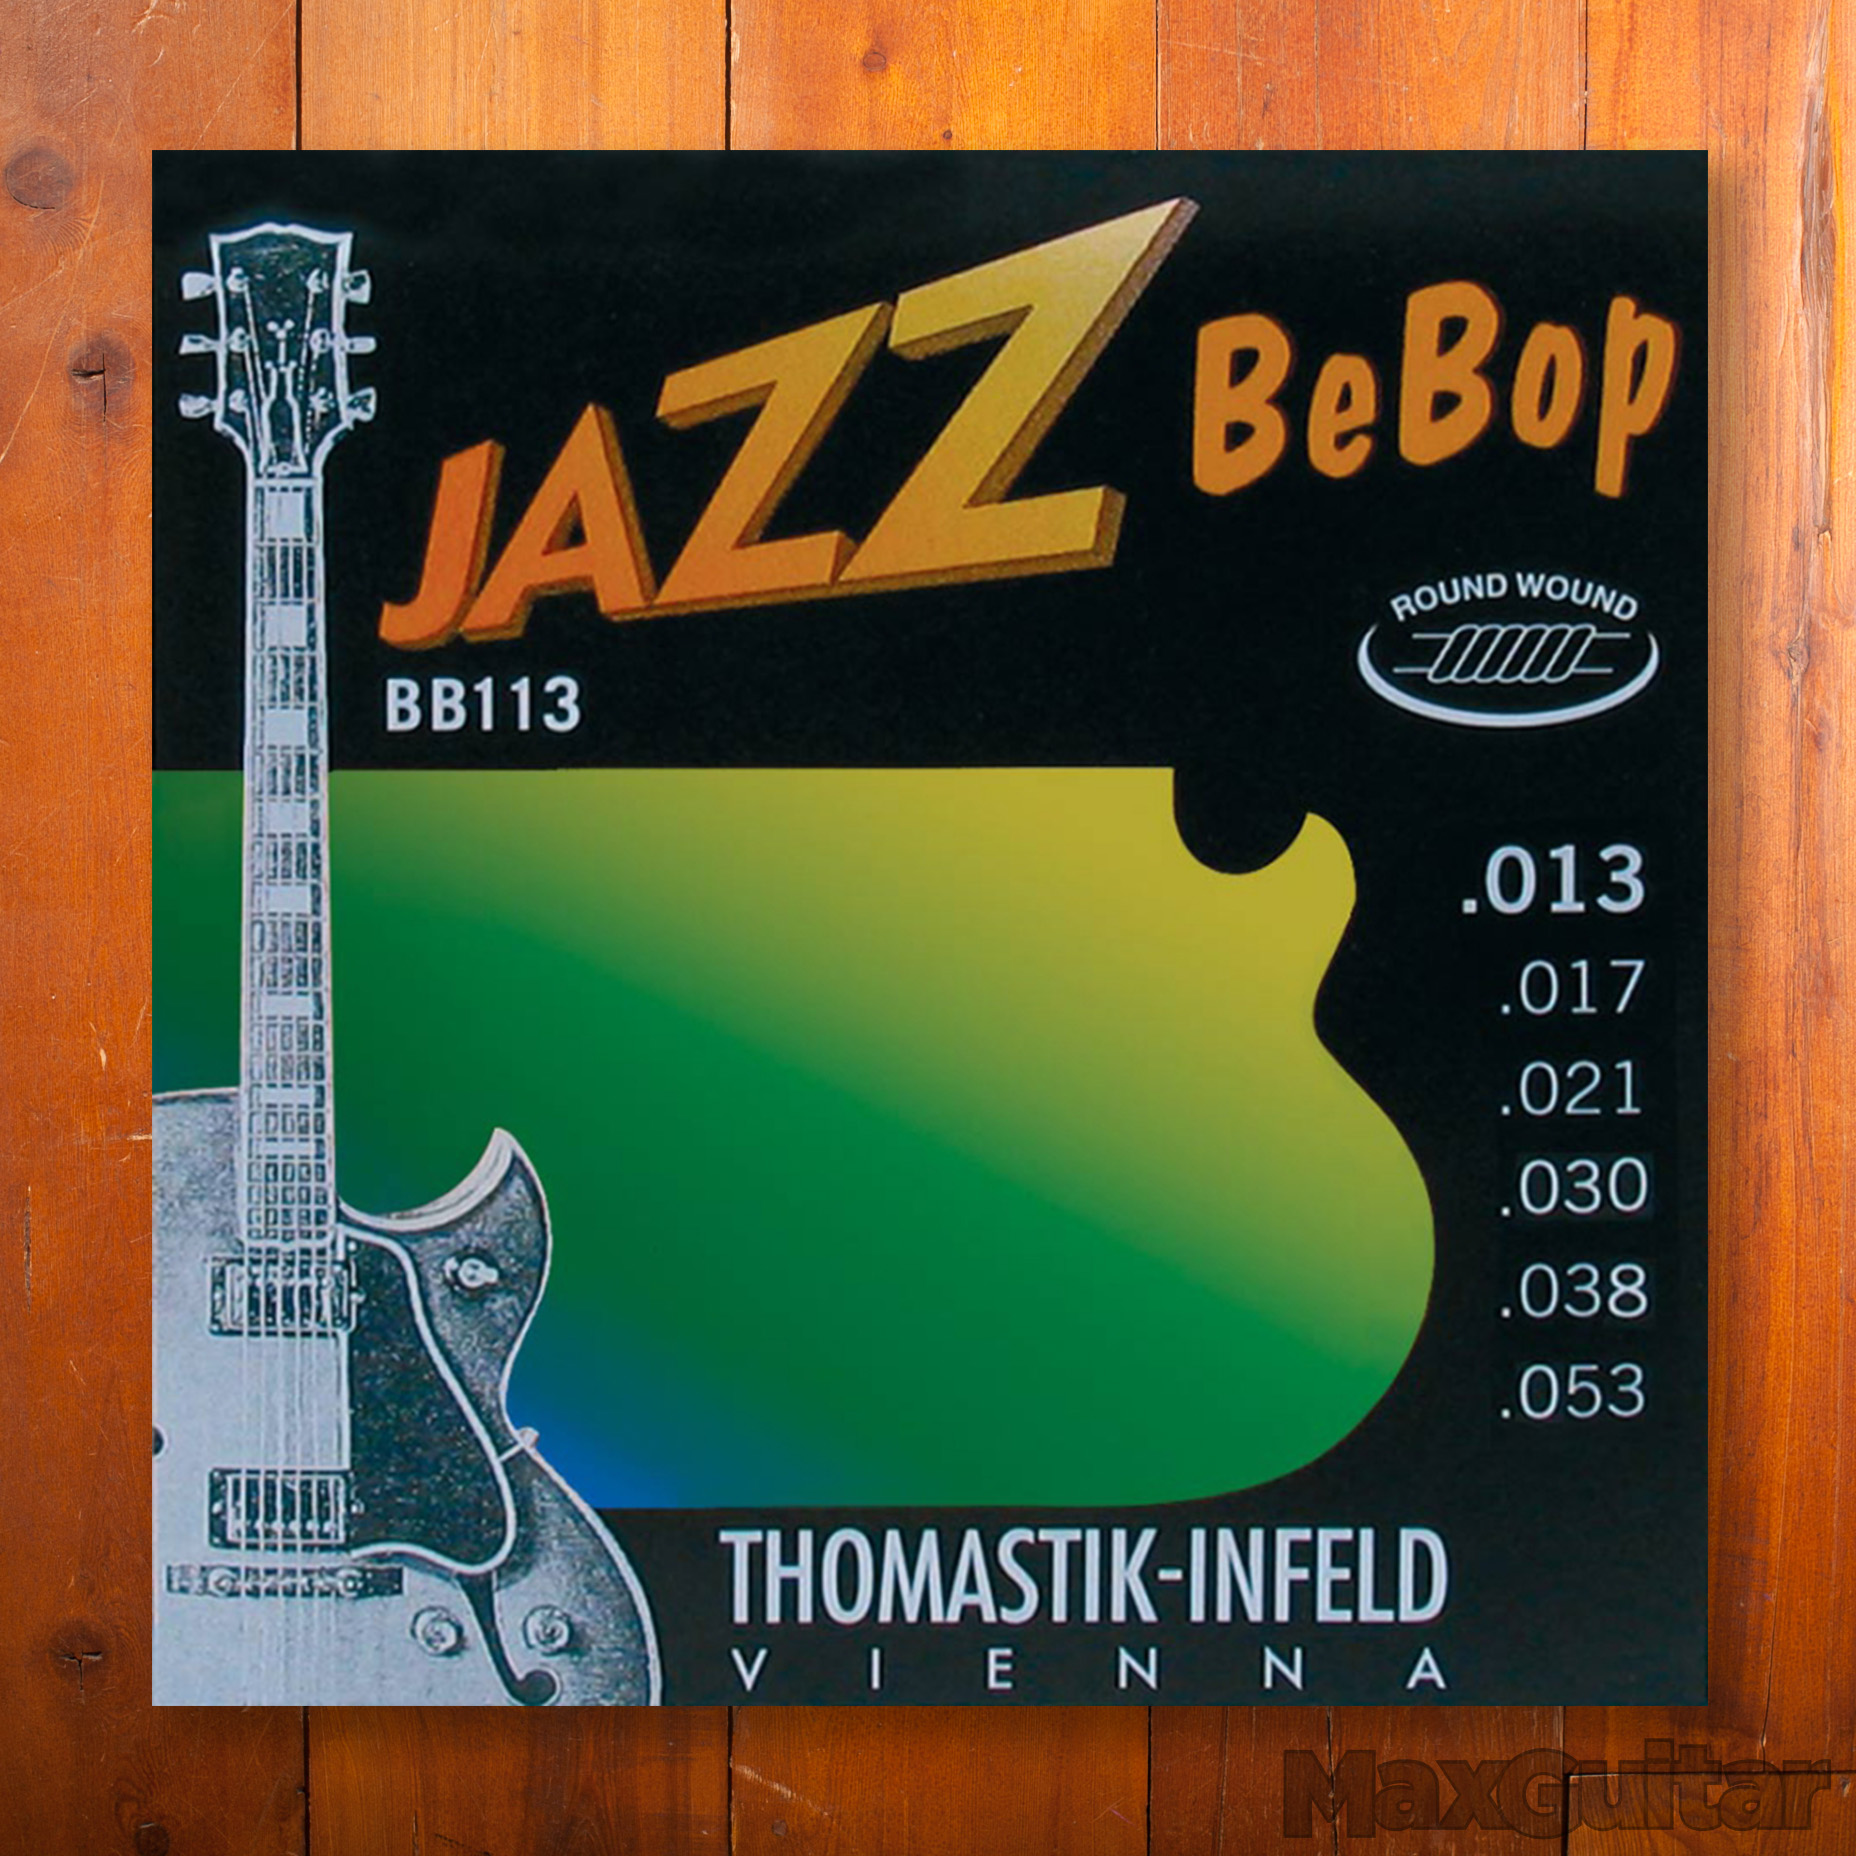 Thomastik-Infeld BB113 Jazz BeBop Roundwound Medium Light